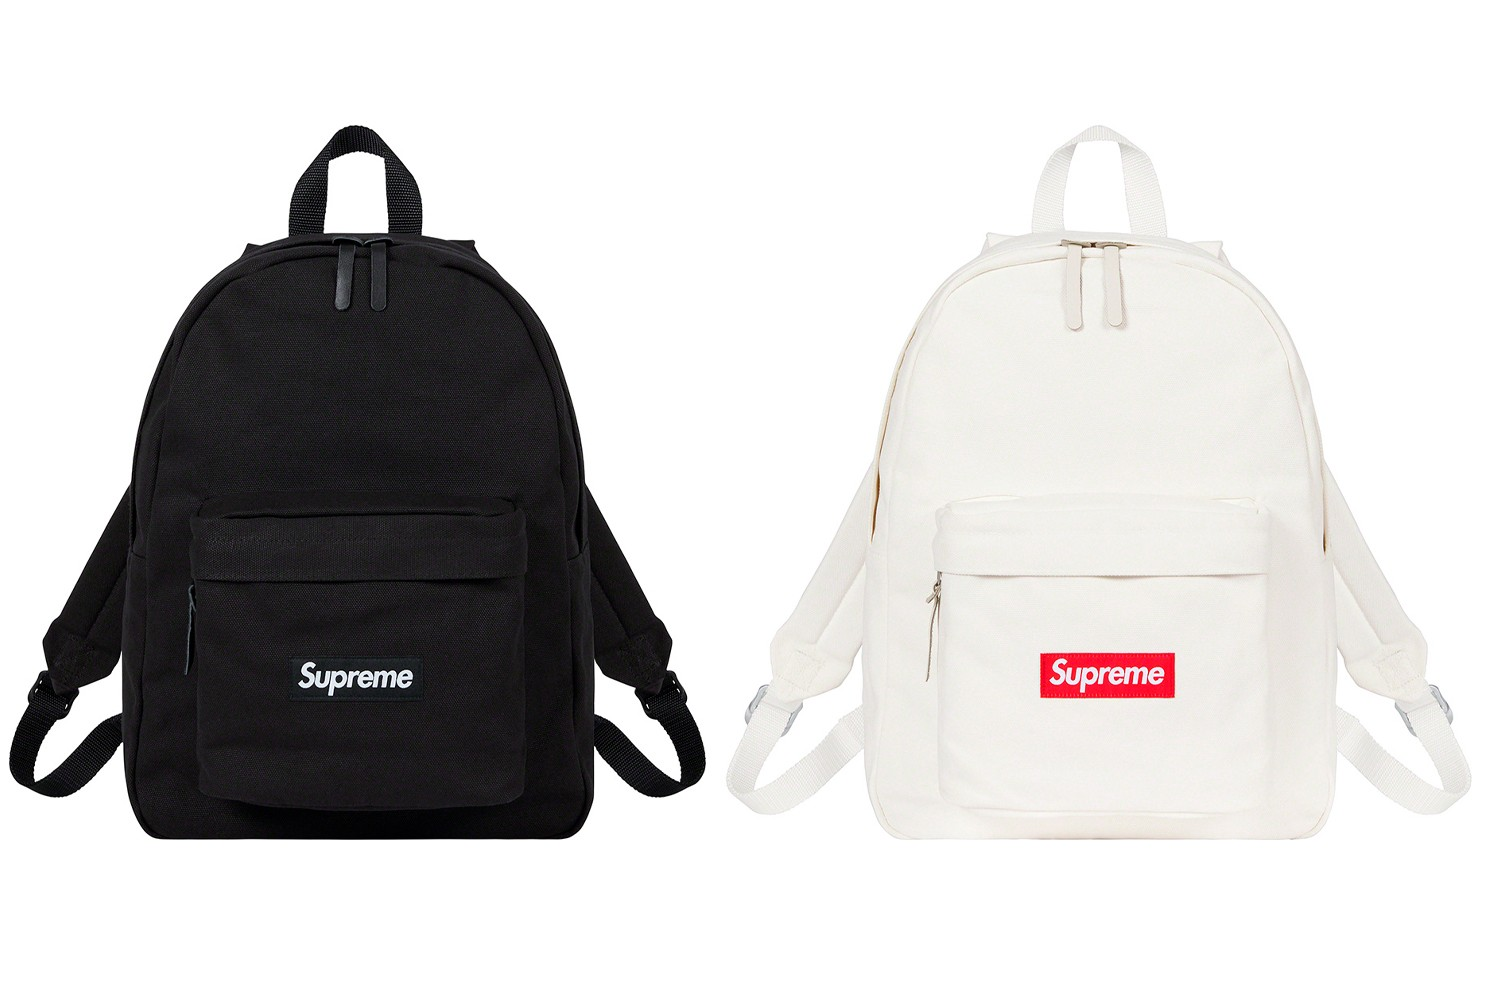 Supreme Fall Winter 2020 Week 5 Release List Chrome Hearts Circulate Black Out The Ballot NOAH Barbour Patta Umbro SANG BLEU AKILA Raf Simons Eastpak No Vacancy Inn Stüssy